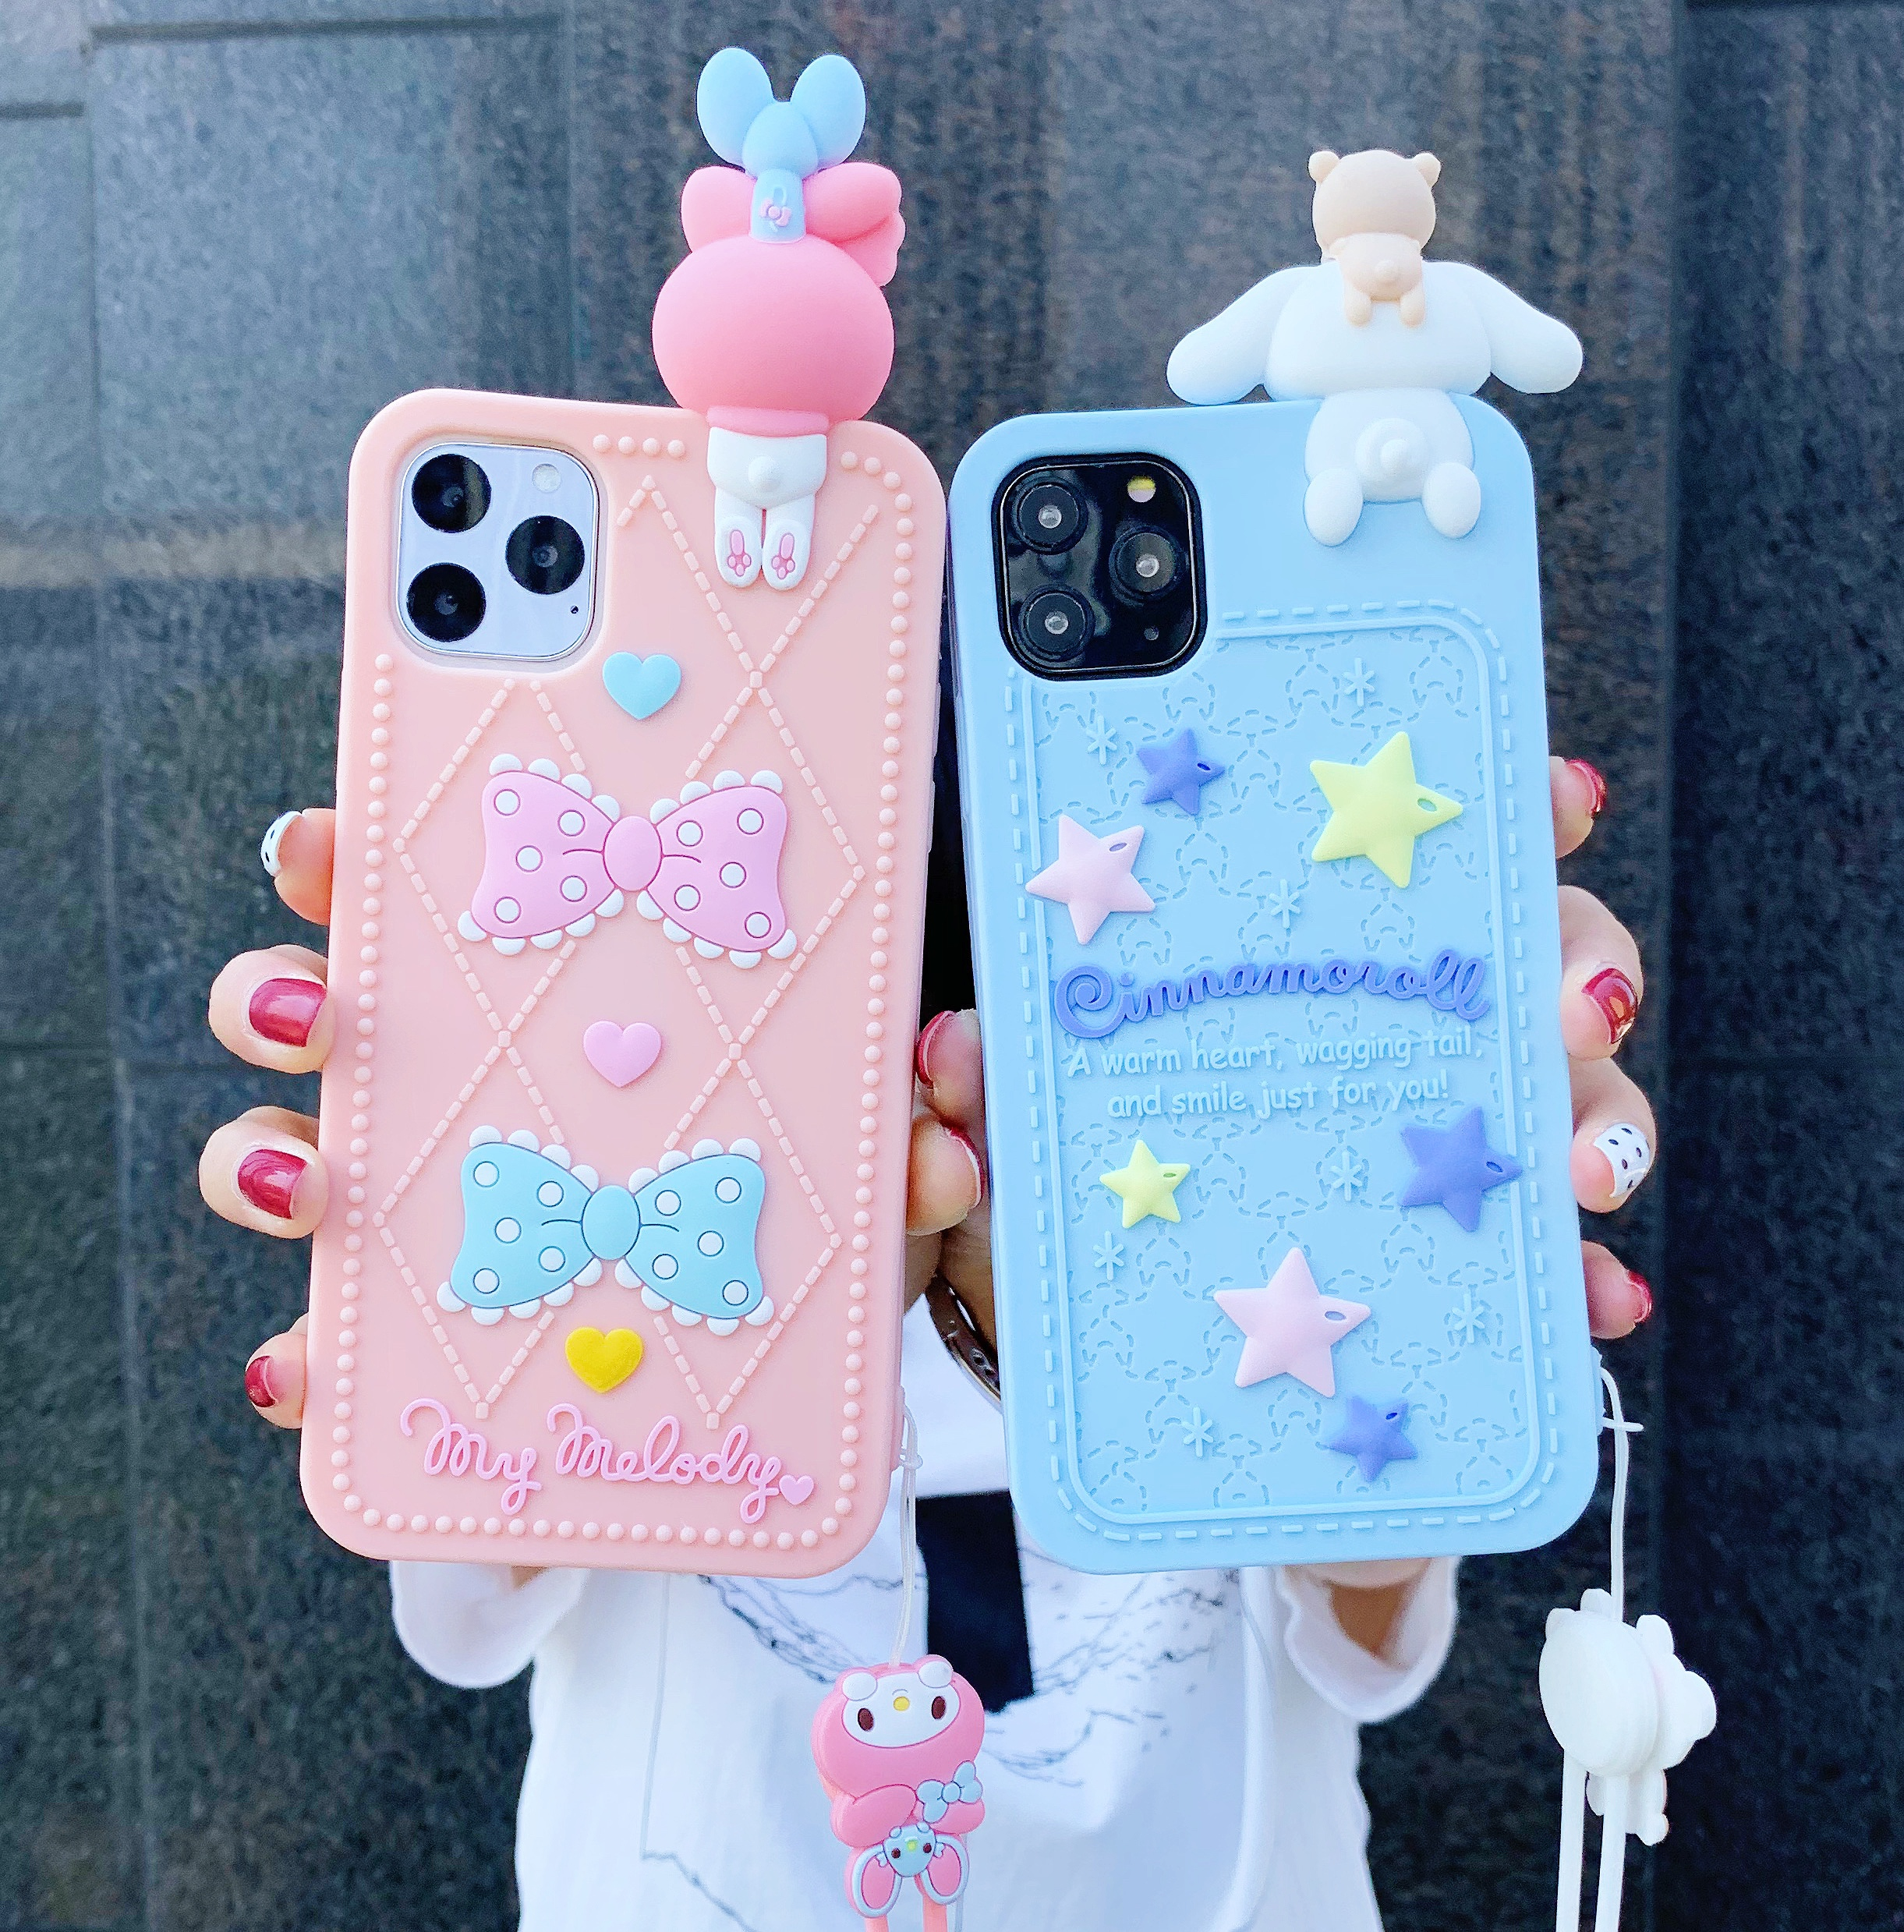 3D For Iphone 12 Mini 11 Pro Max 7 8 Plus X XR XS Max Cute Cartoon Pink Melody Soft Silicone Phone Case Cover With Lanyard